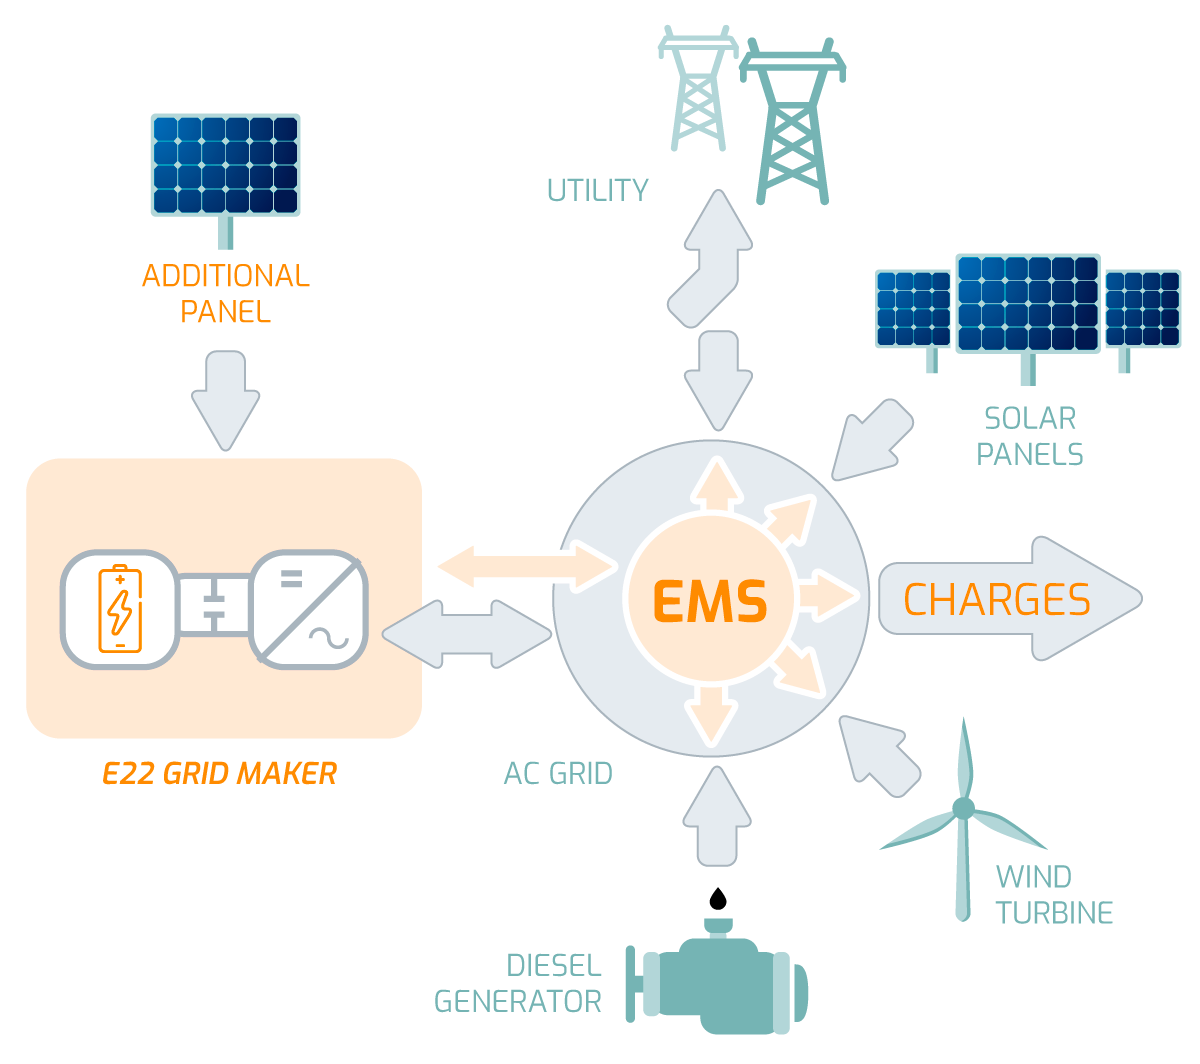 E22 Energy Management System for isolated hybrid systems